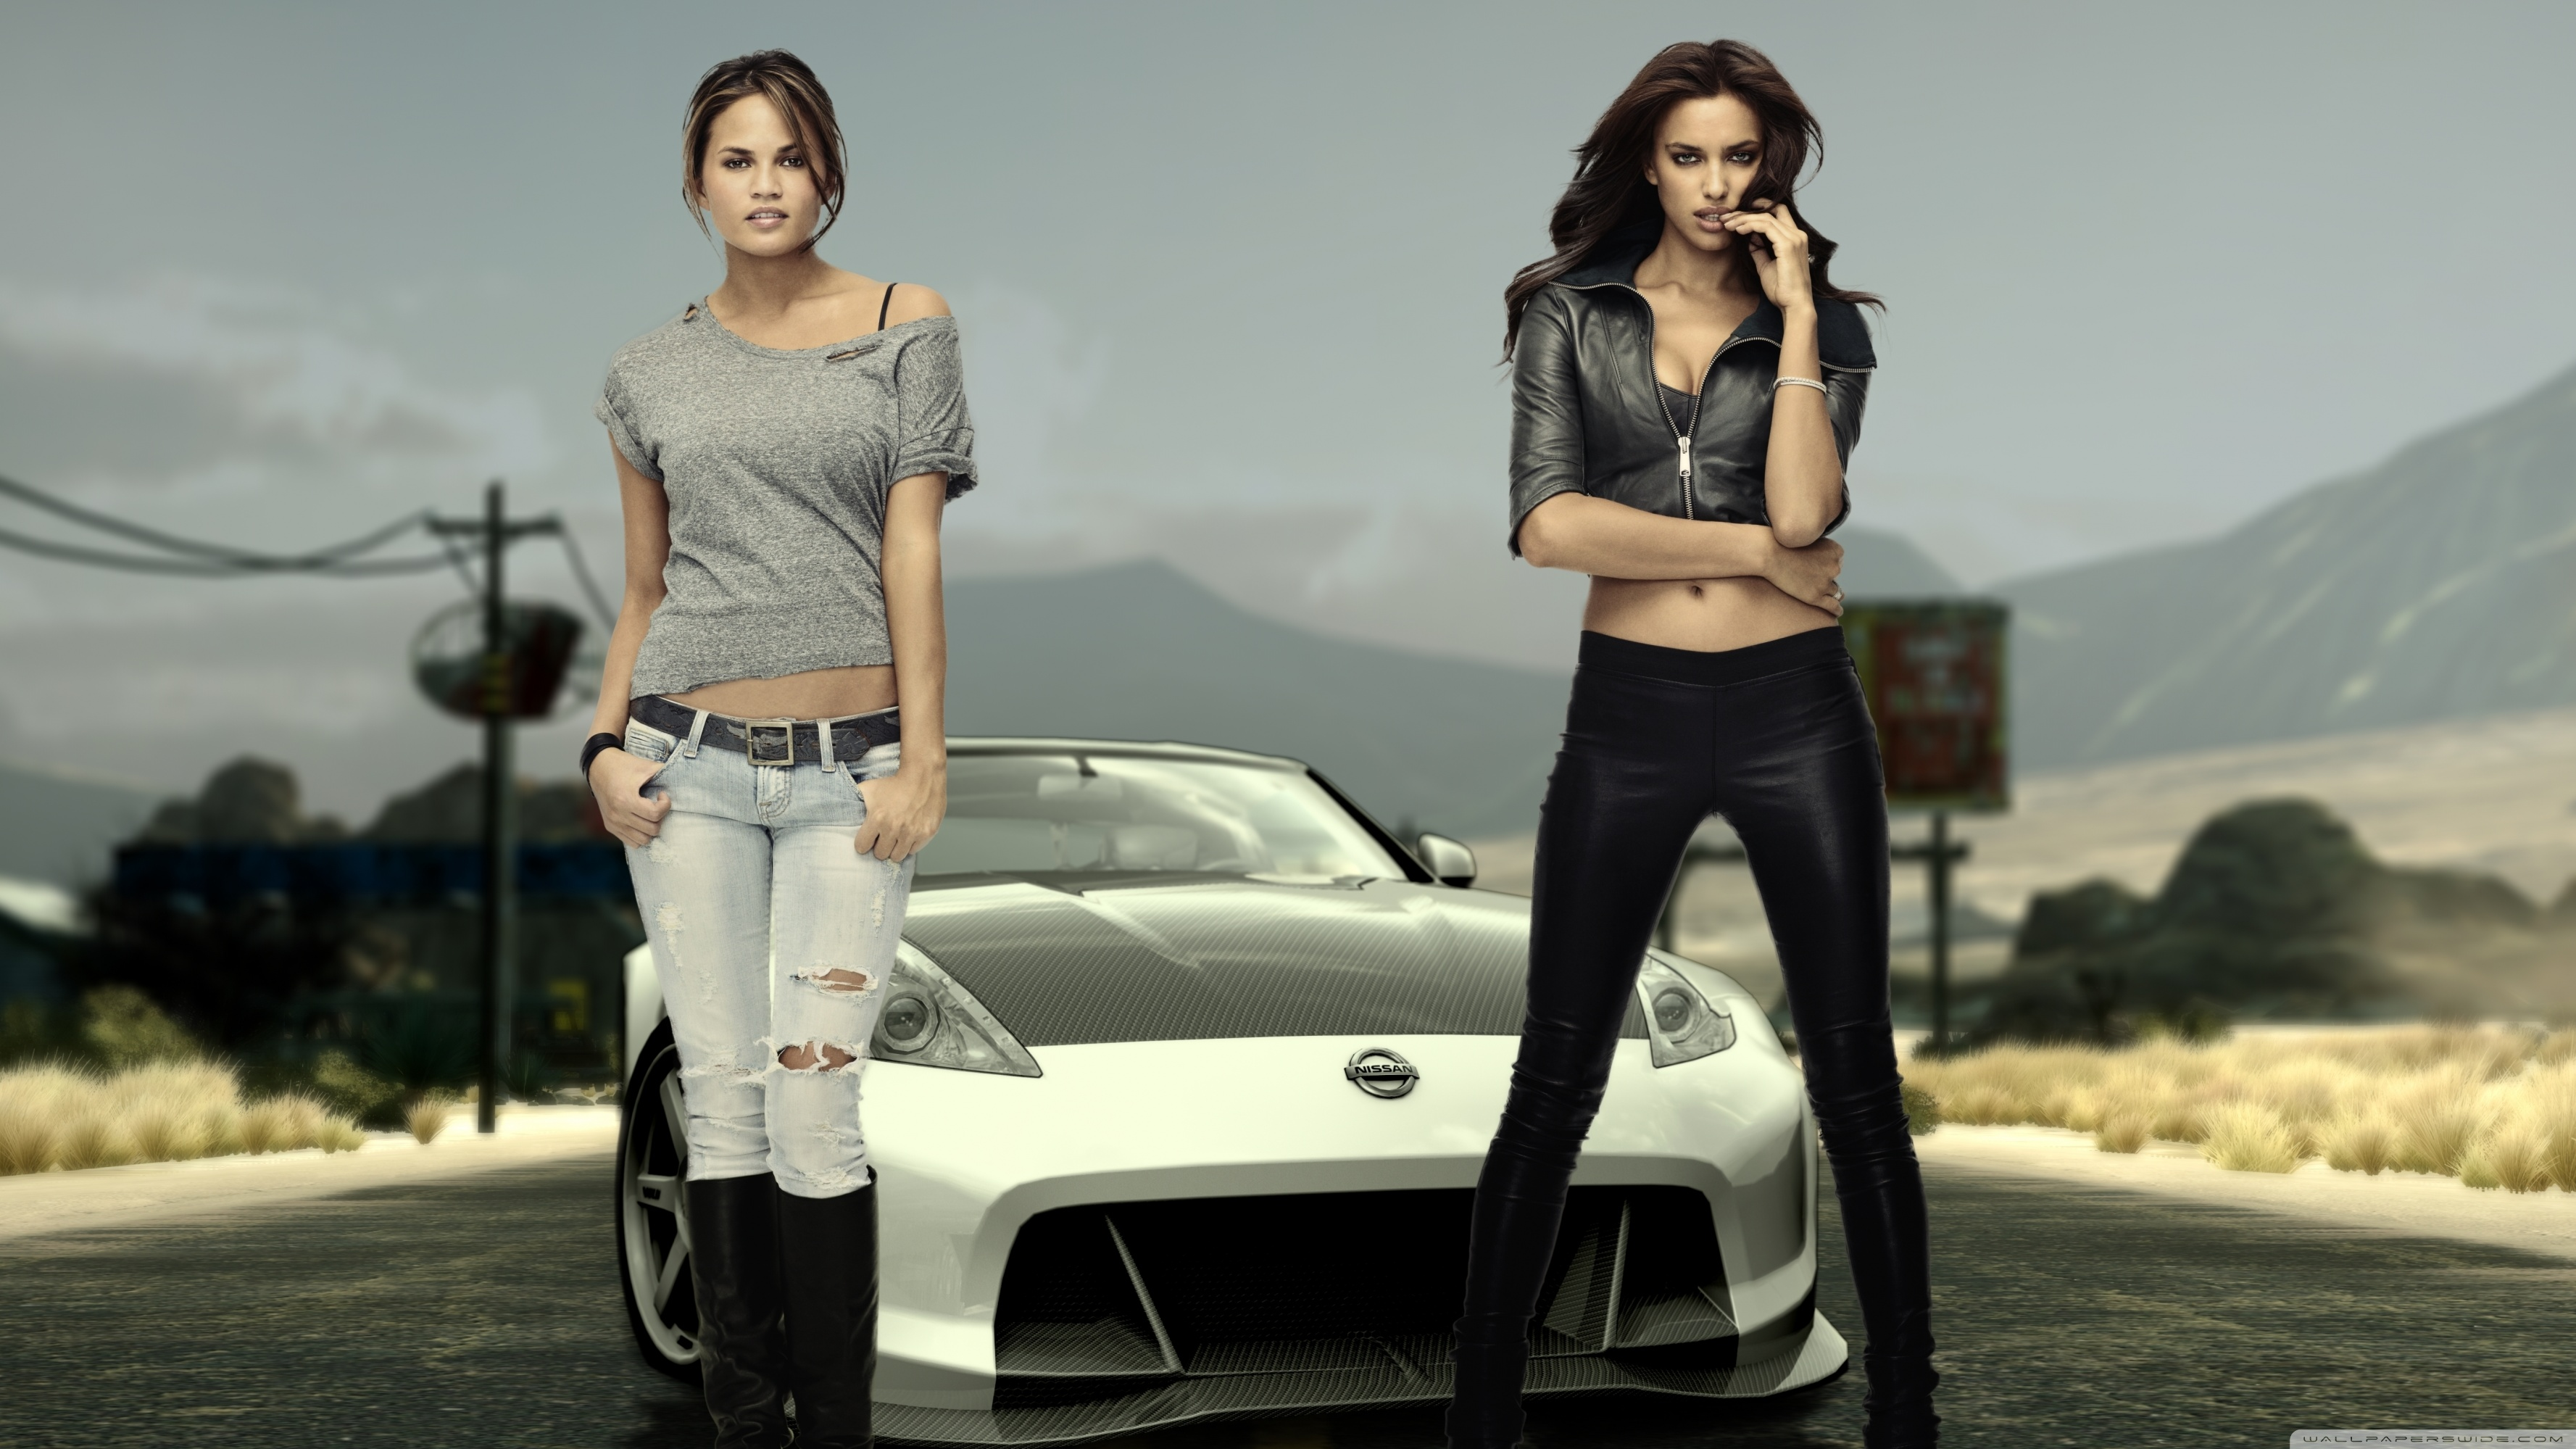 Need For Speed Girls The Run Irina Shayk And Chrissy Teigen Wallpaper